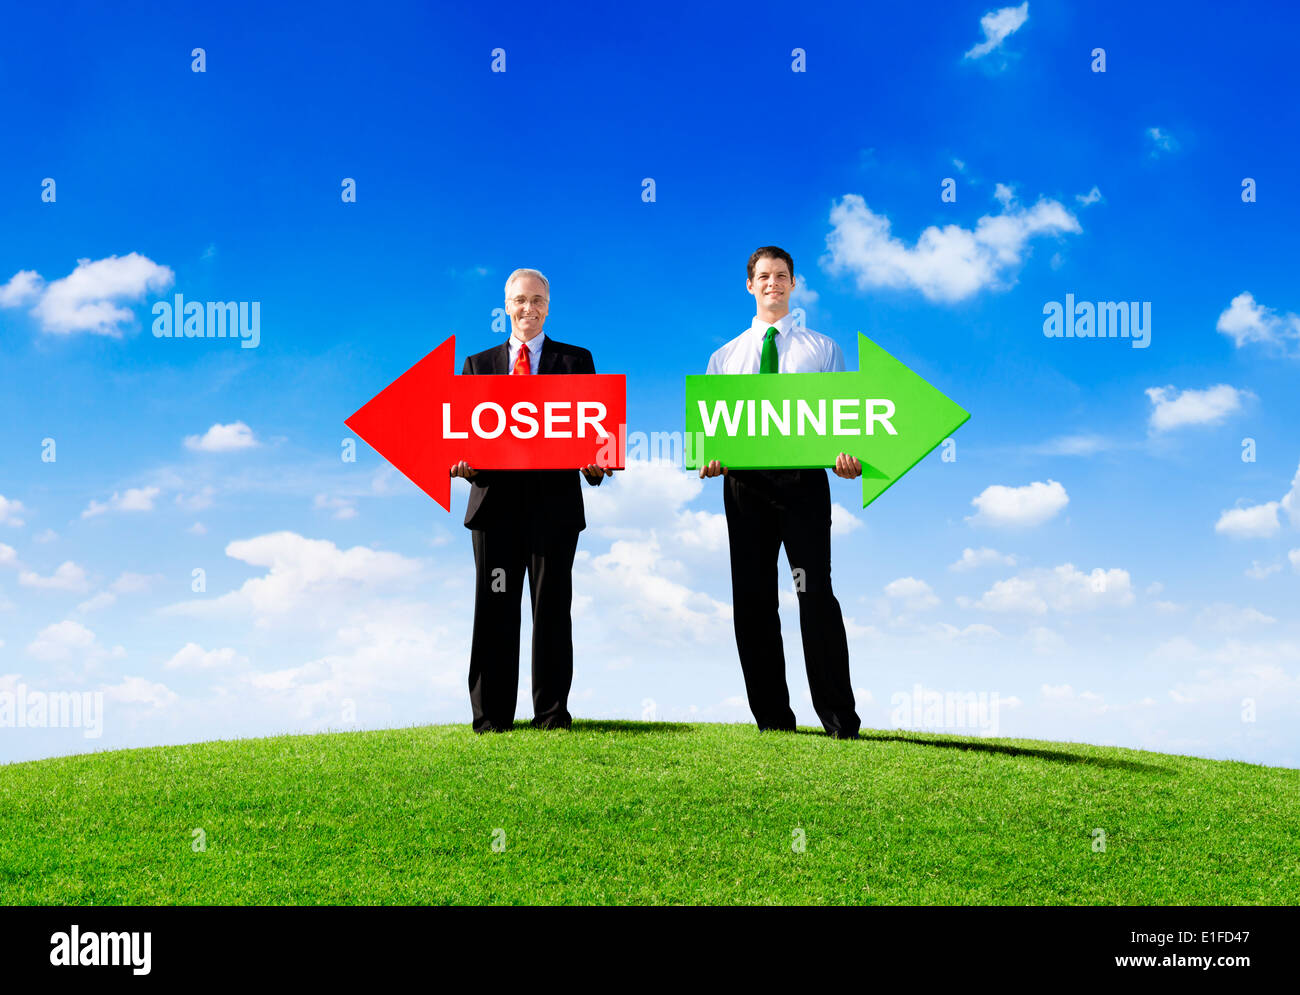 Two Businessmen Holding Contrasting Arrows for Loser and Winner - Stock Image